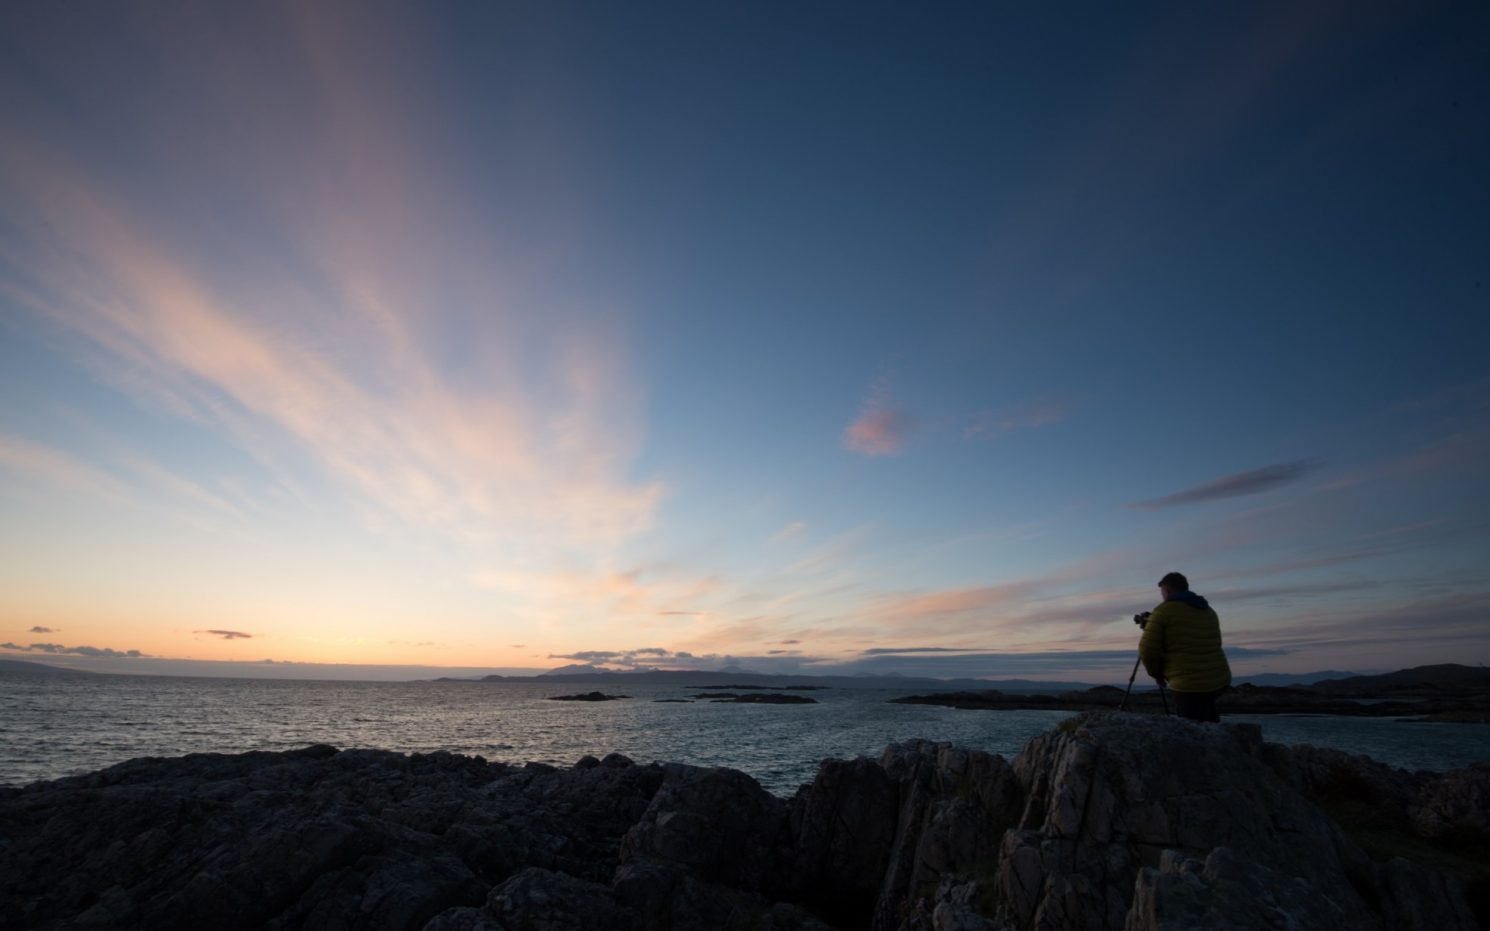 Photographing sunset on Camusdarach Beach in the highlands of west Scotland coastline on Mallory on Travel adventure travel, photography, travel ALI_Camusdarach8683